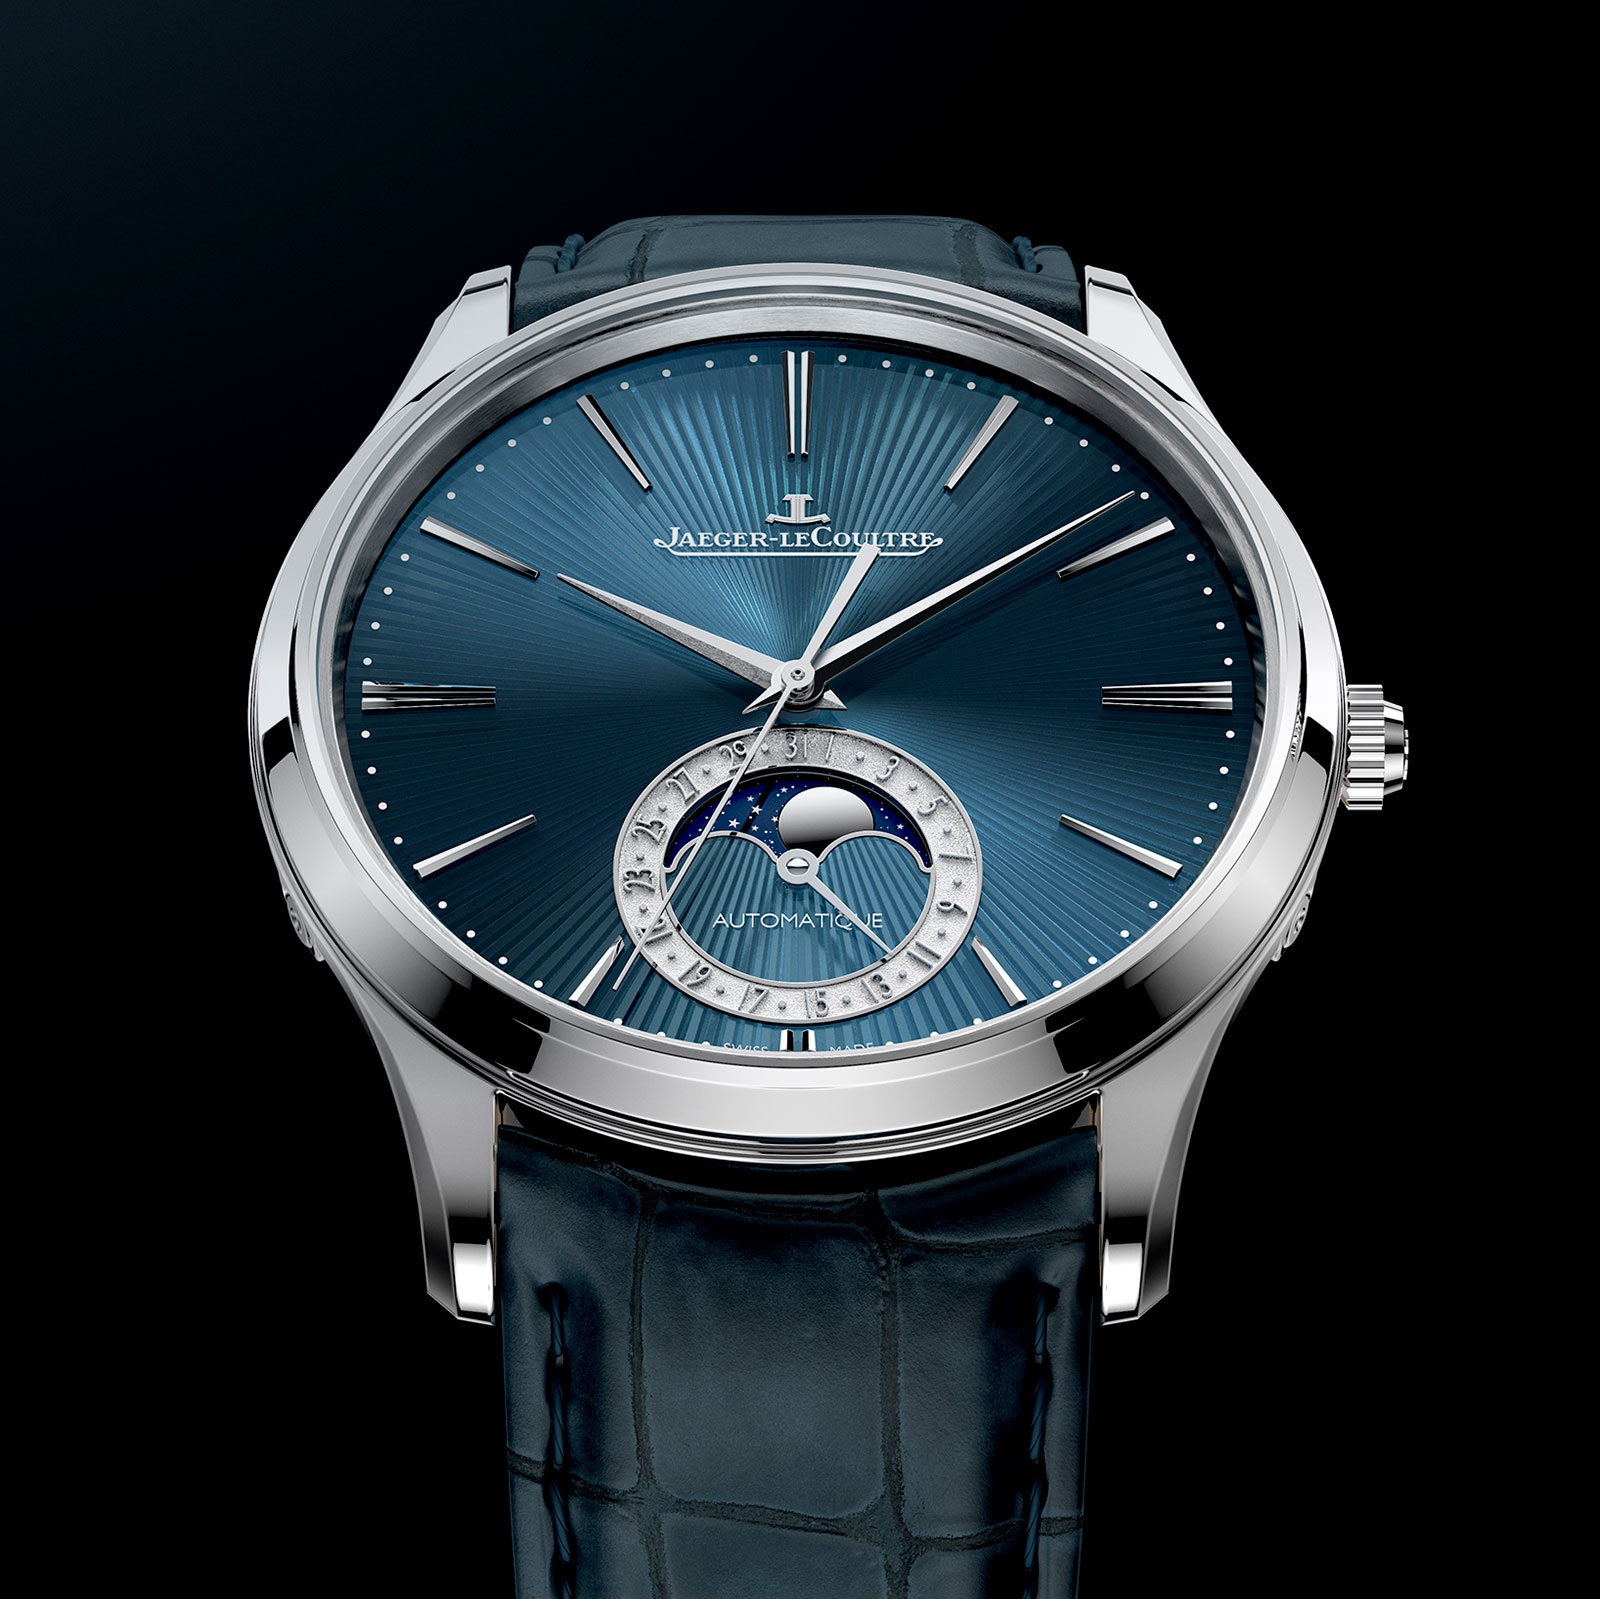 jaeger lecoultre introduces the master ultra thin moon enamel sjx watches. Black Bedroom Furniture Sets. Home Design Ideas